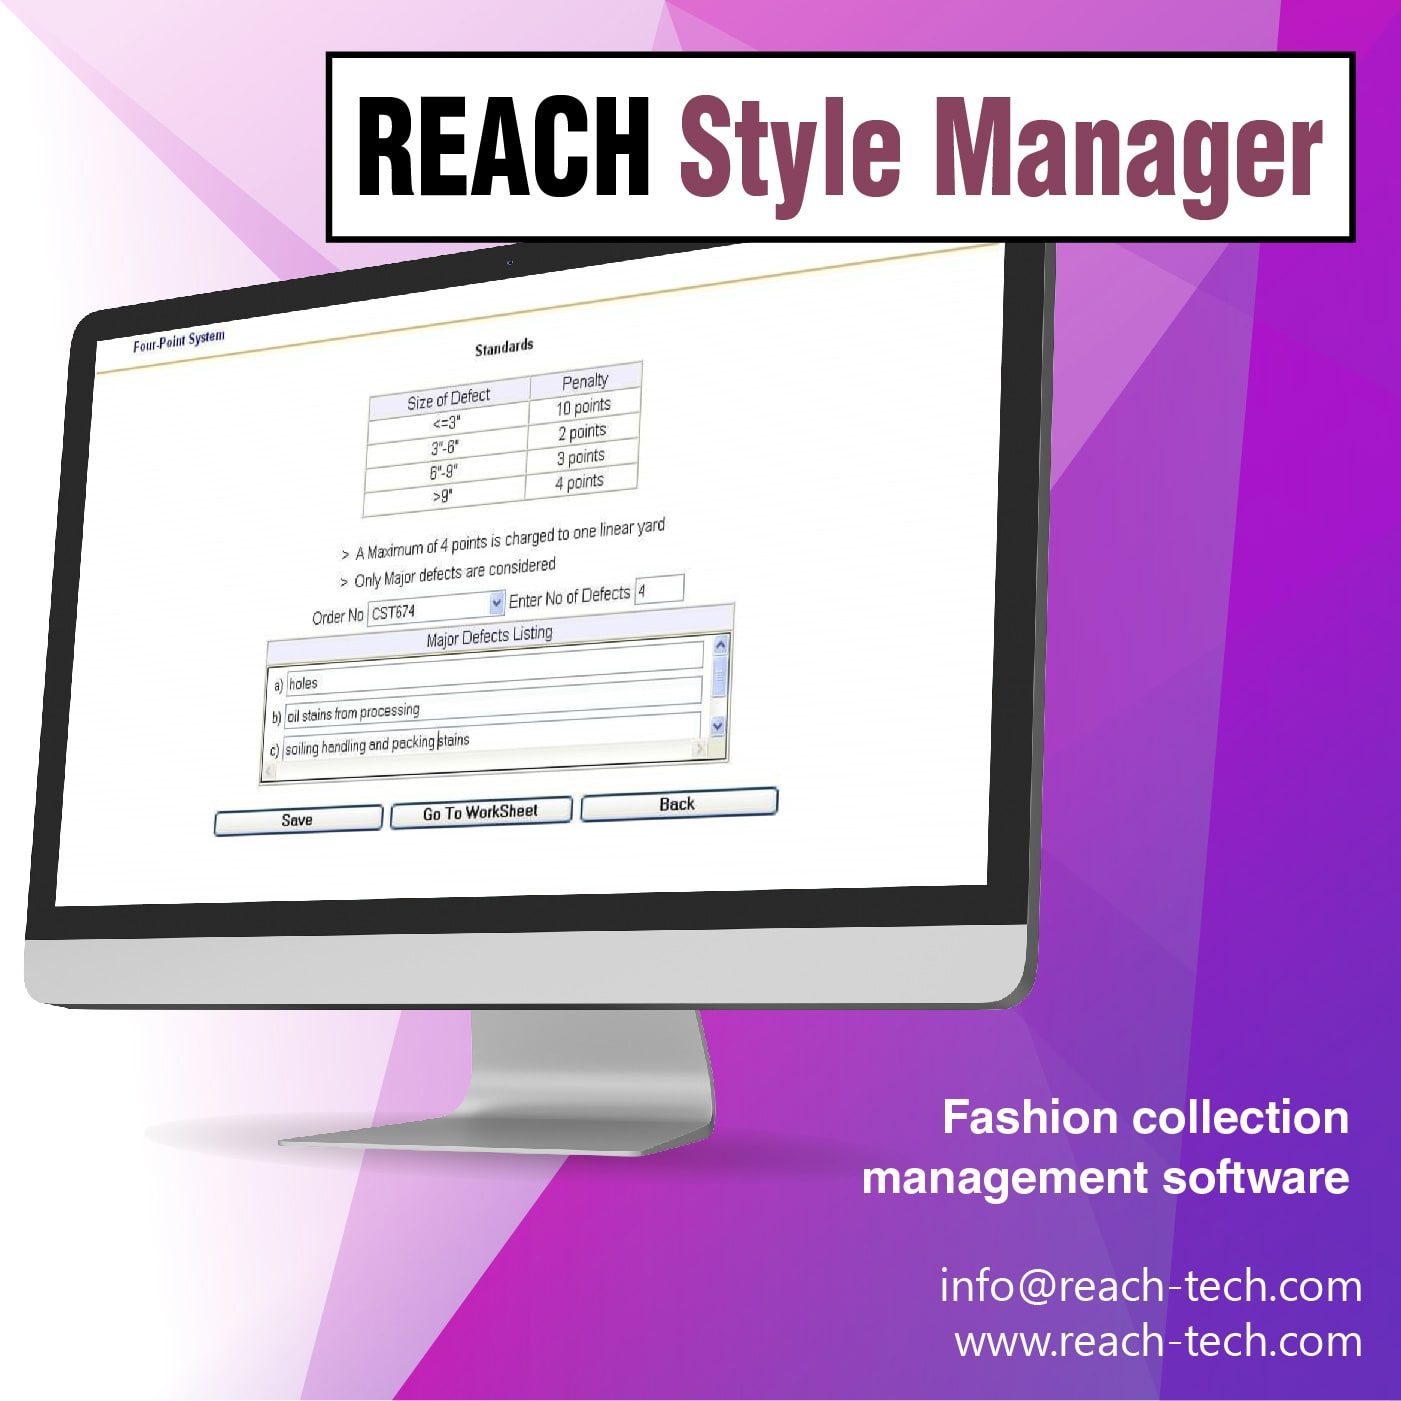 clothing-collection-management-software-4